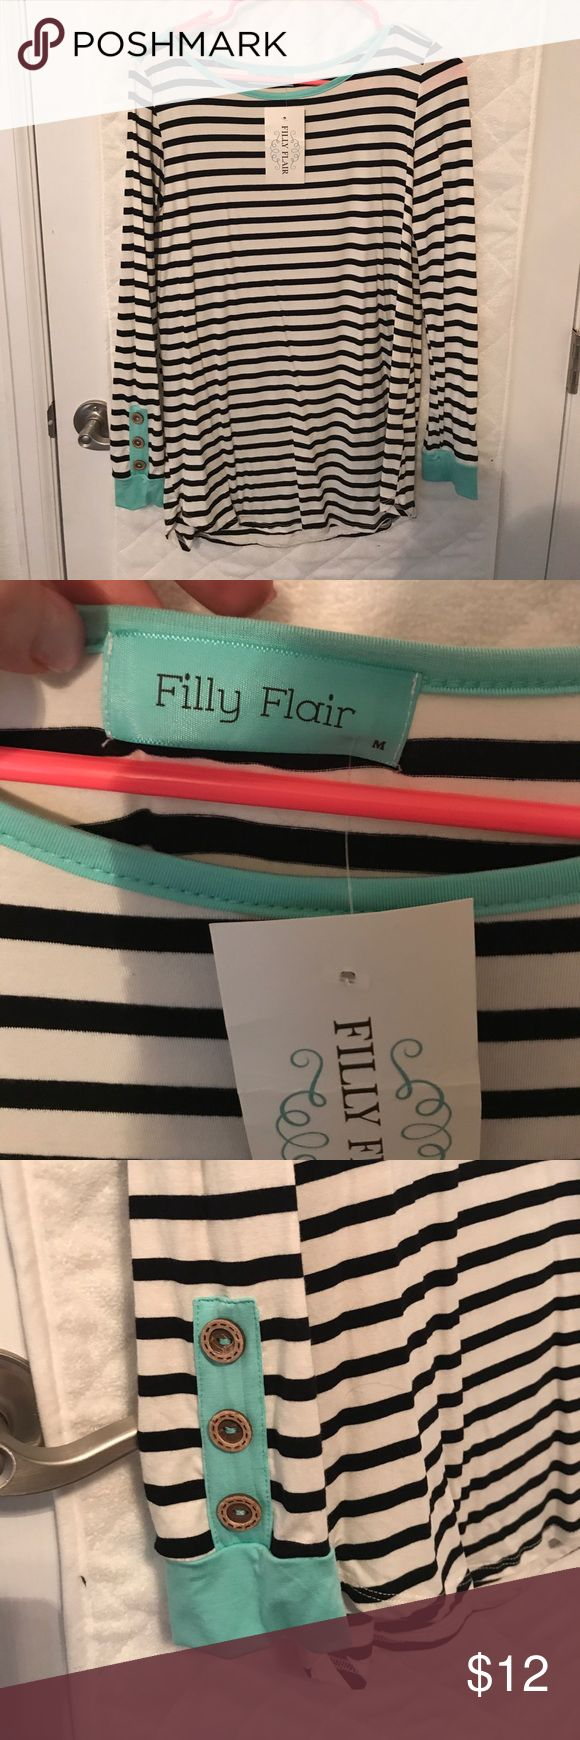 Cute striped top! New with tags from Filly Flair (a cute online boutique) very cute detail on the sleeve. Size medium. Filly Flair Tops Tees - Long Sleeve